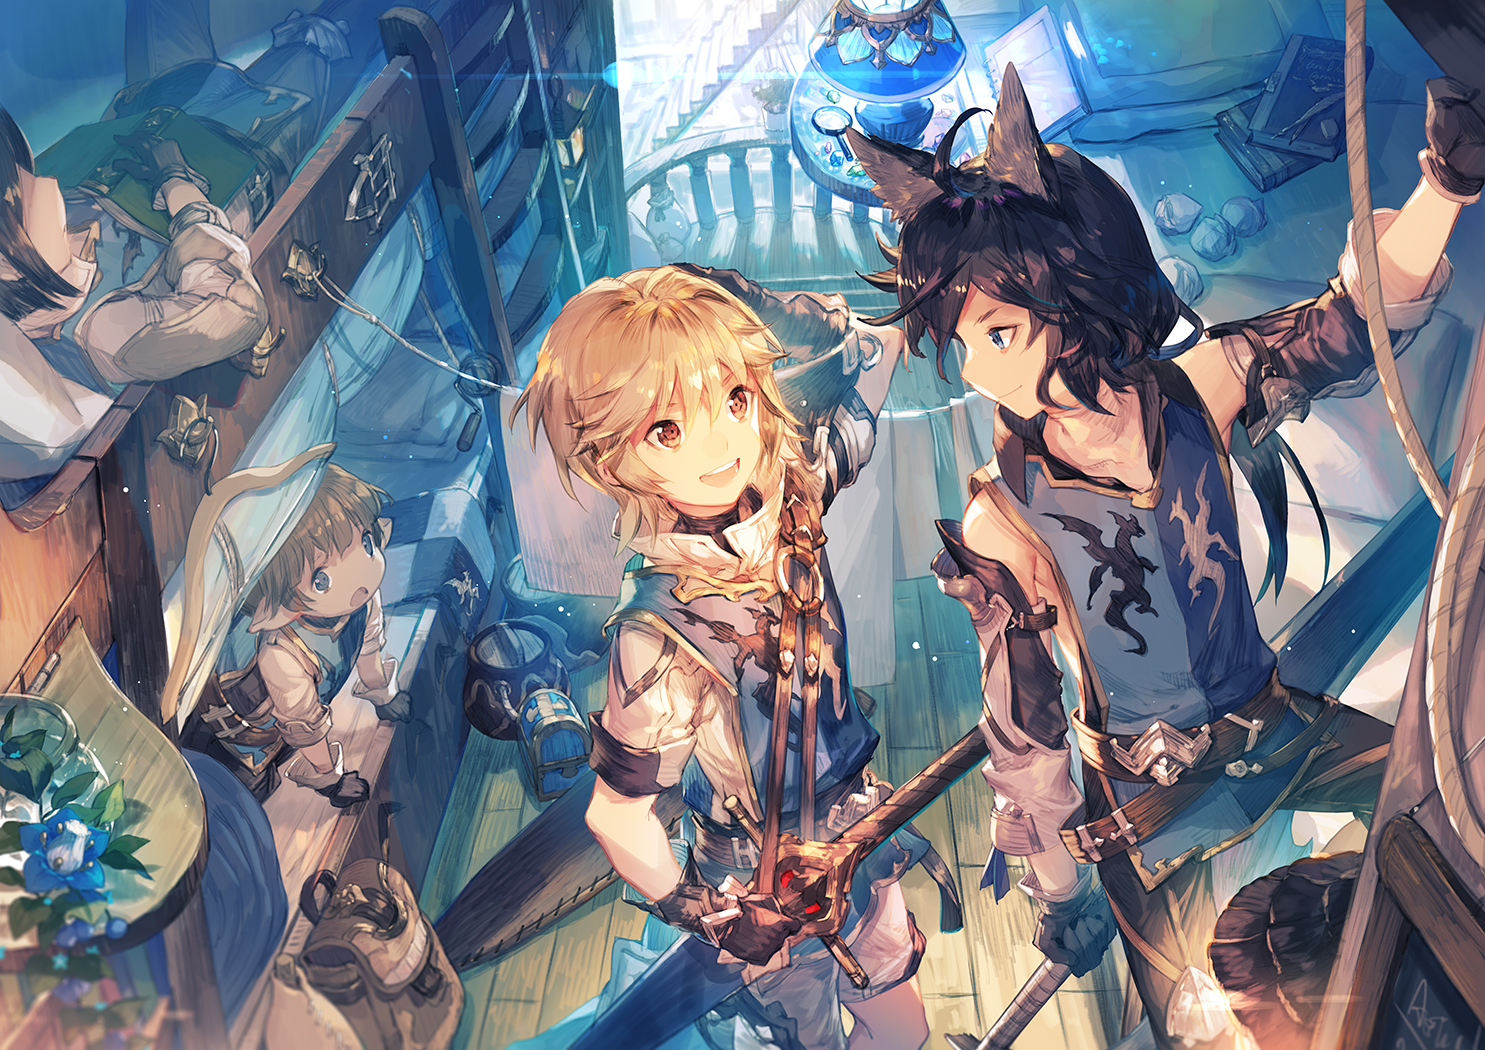 all_male animal_ears armor arthur_(granblue_fantasy) bed black_hair blue_eyes book brown_eyes brown_hair cruz_(granblue_fantasy) elbow_gloves flowers gloves granblue_fantasy group male mordred_(granblue_fantasy) pointed_ears scorpion5050 short_hair sword tornelio_(granblue_fantasy) weapon